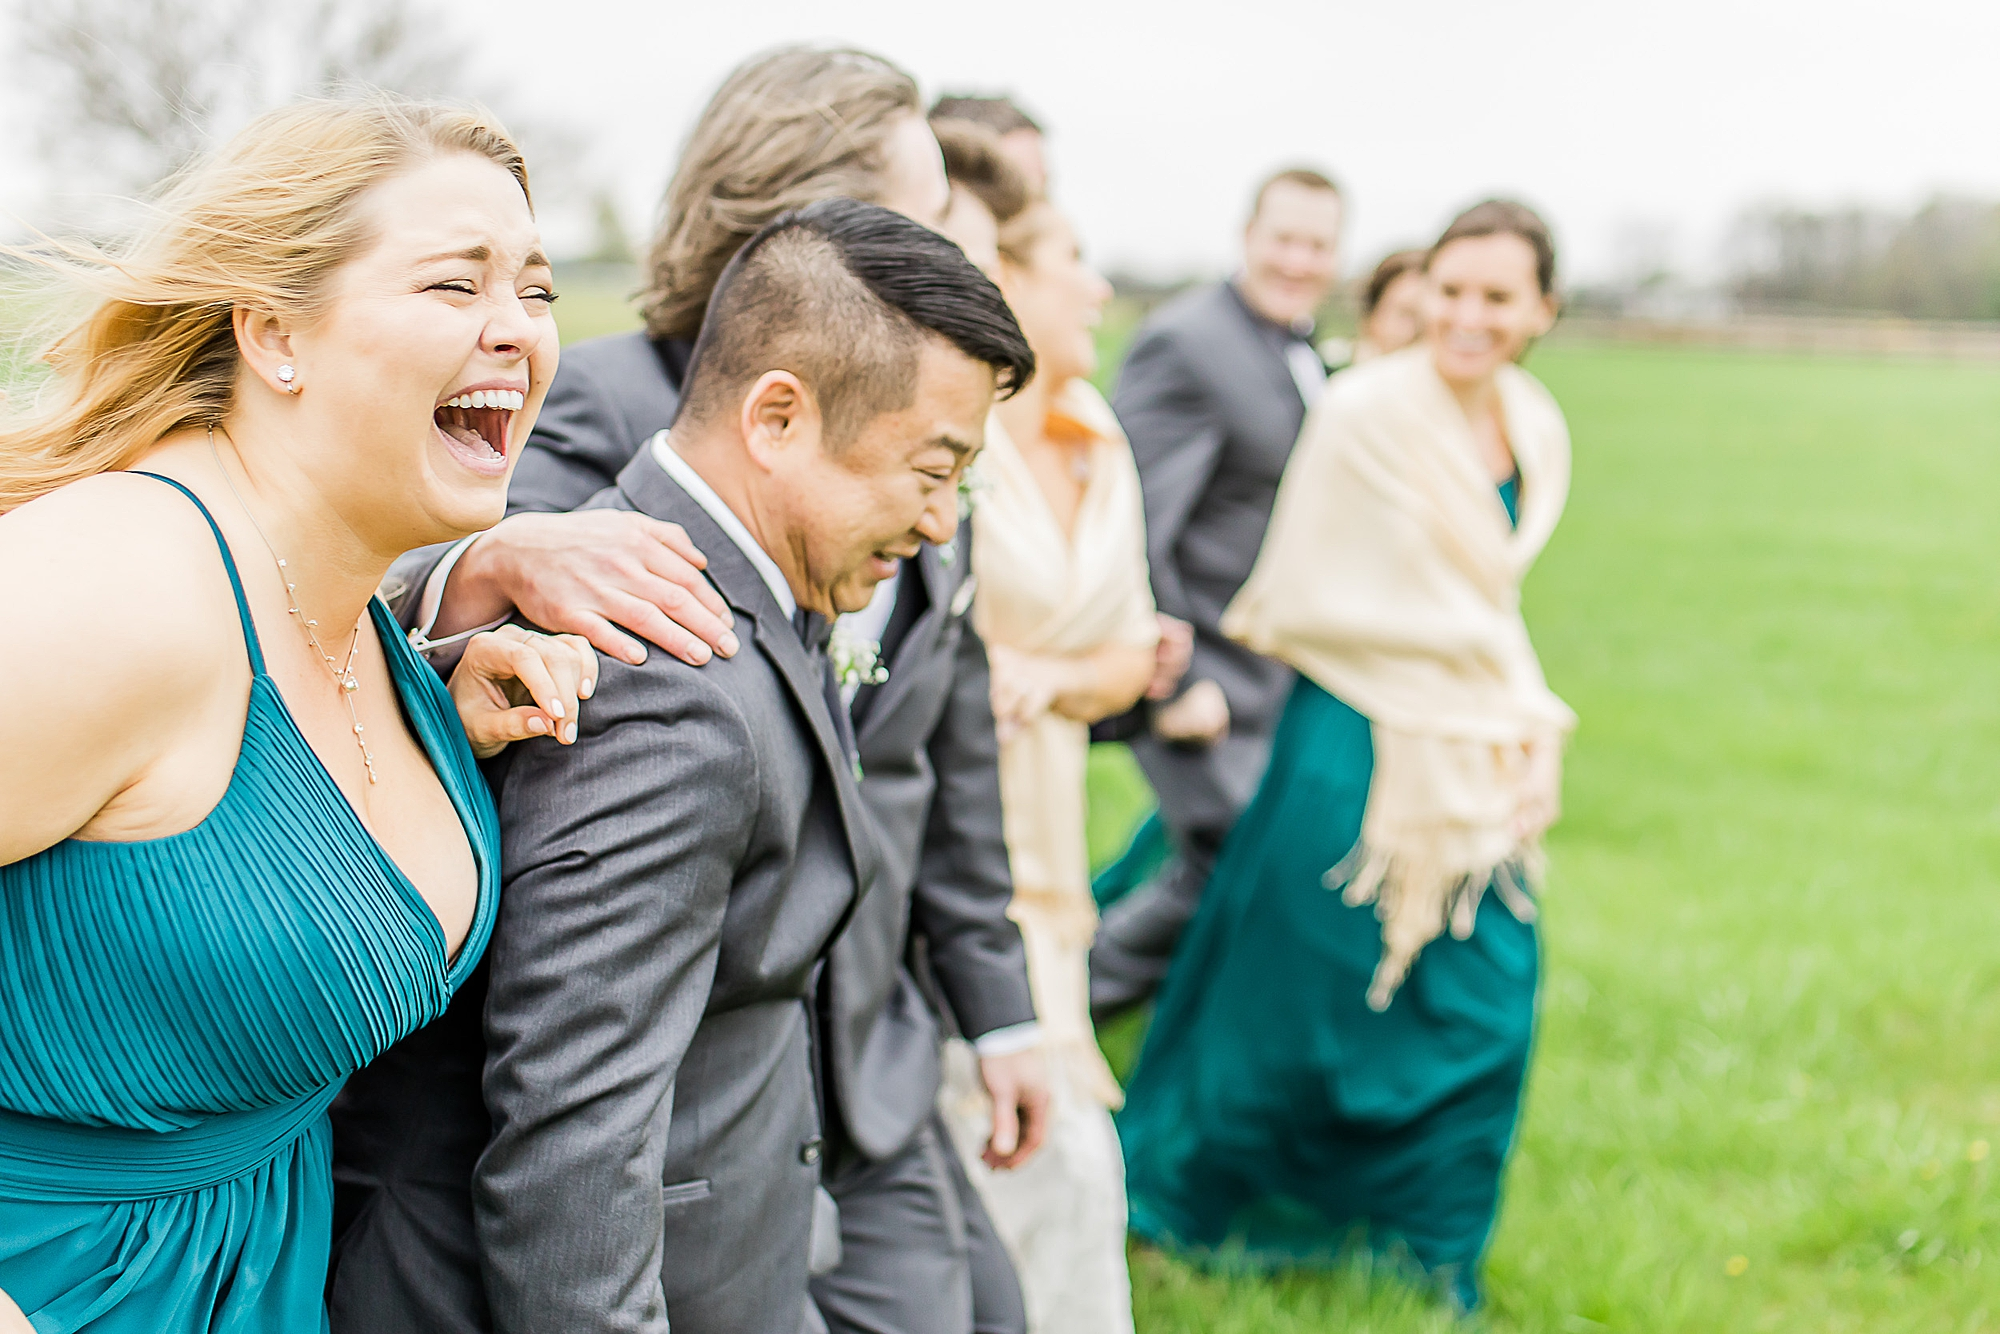 west lafayette indiana wedding photography tips to have a good wedding planning_0421.jpg